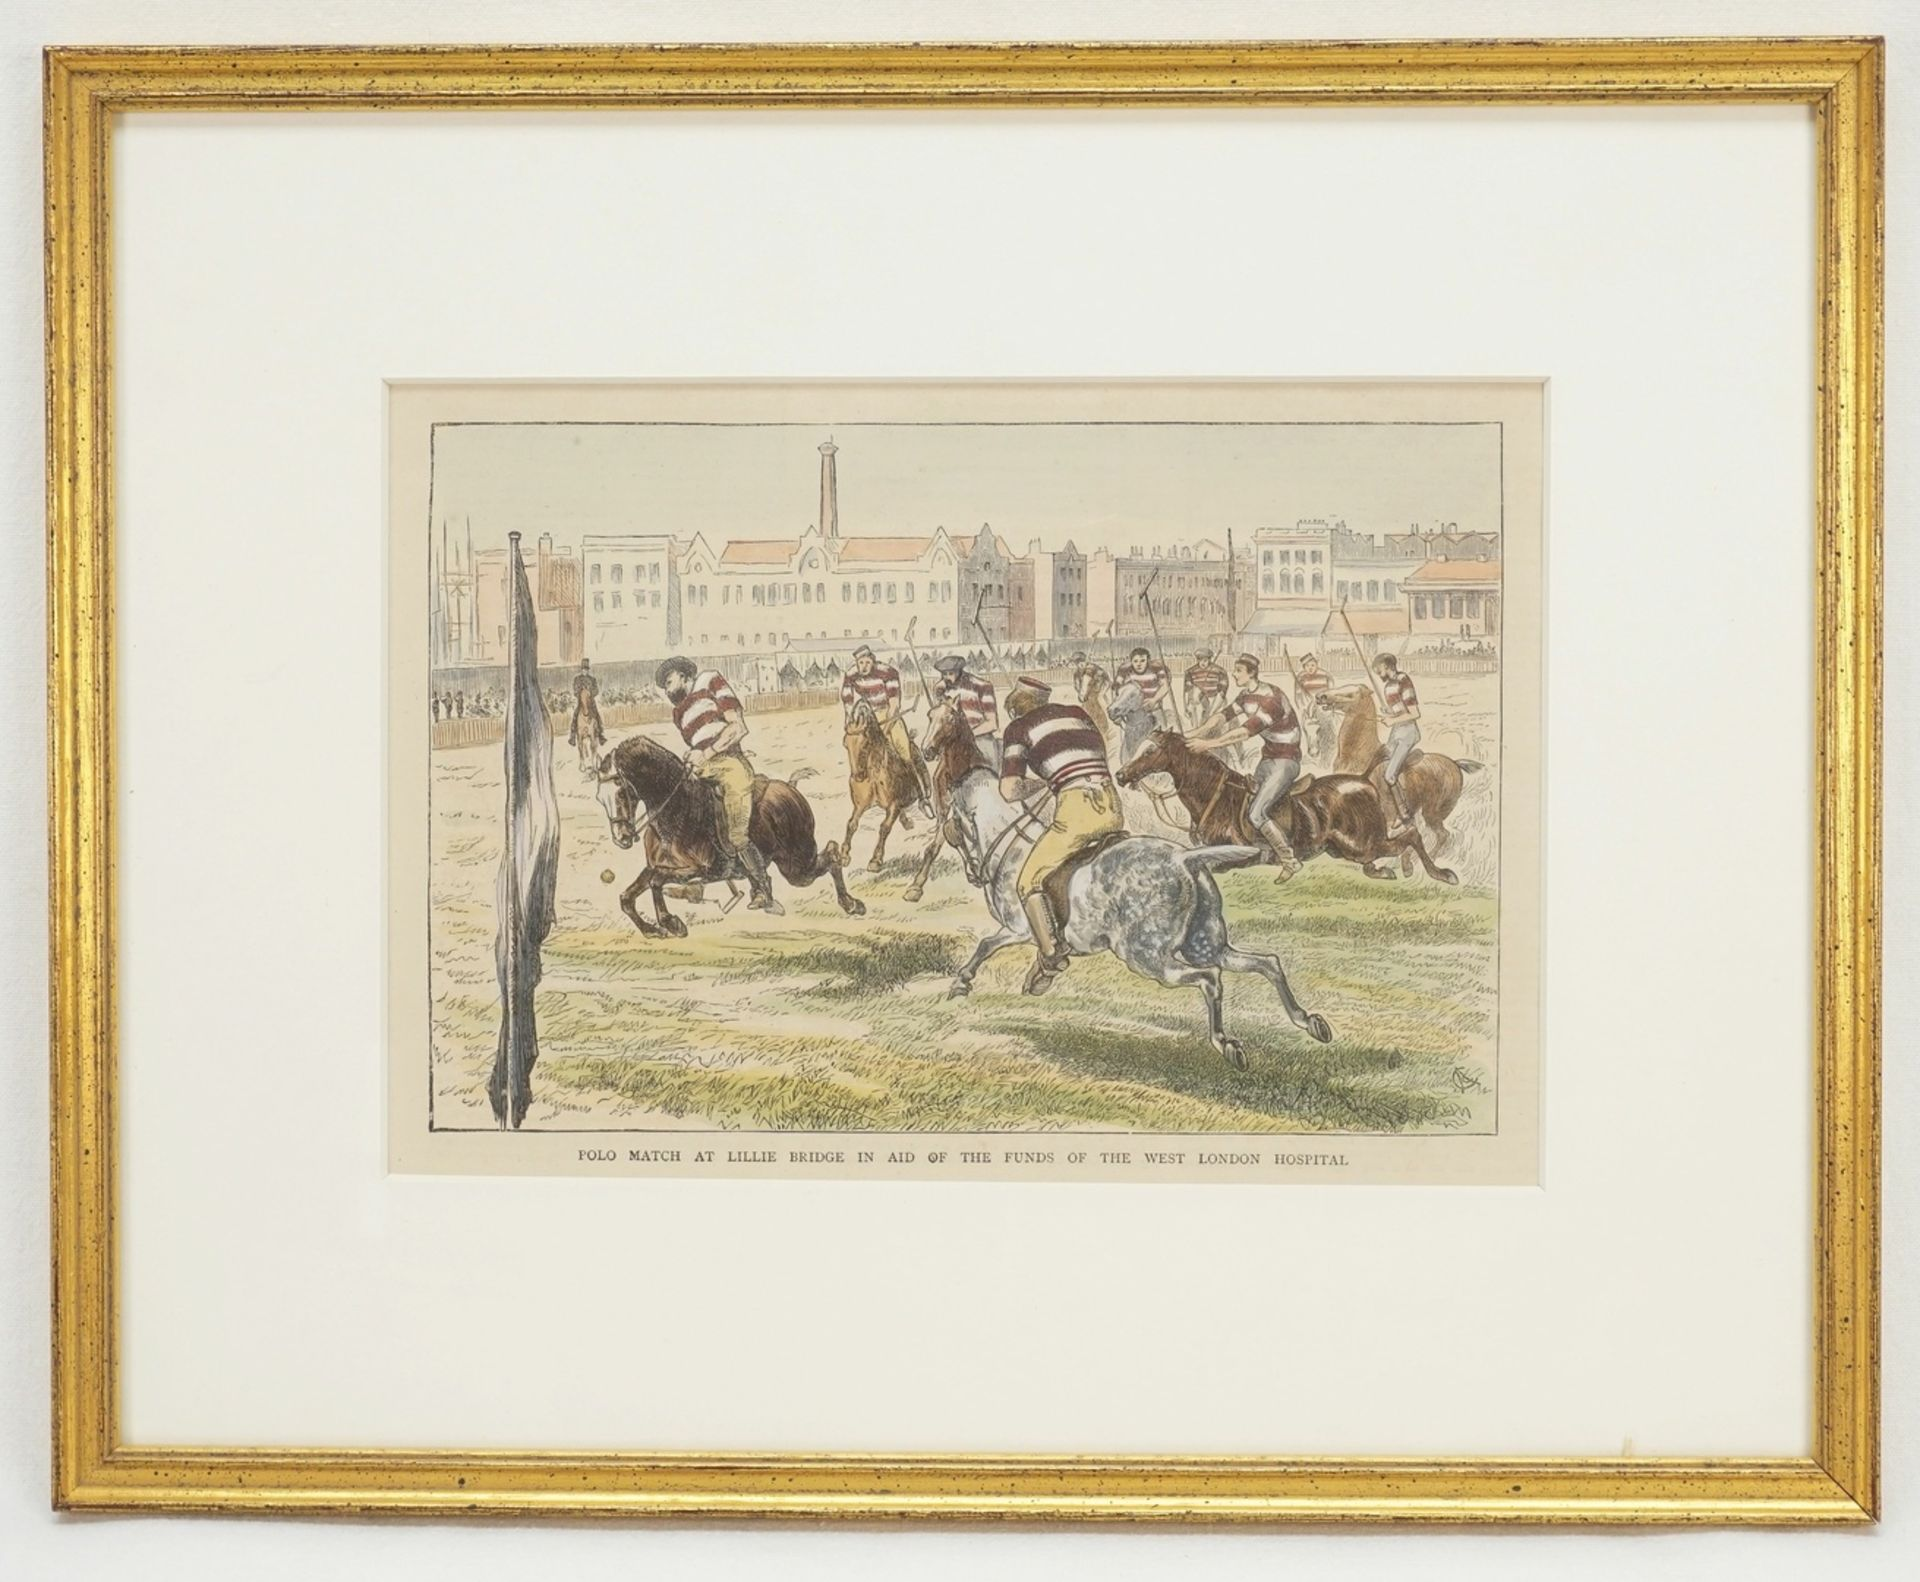 """Britischer Illustrator, """"Polo Match at Lillie Bridge in Aid of the funds of the West London ... - Bild 2 aus 2"""